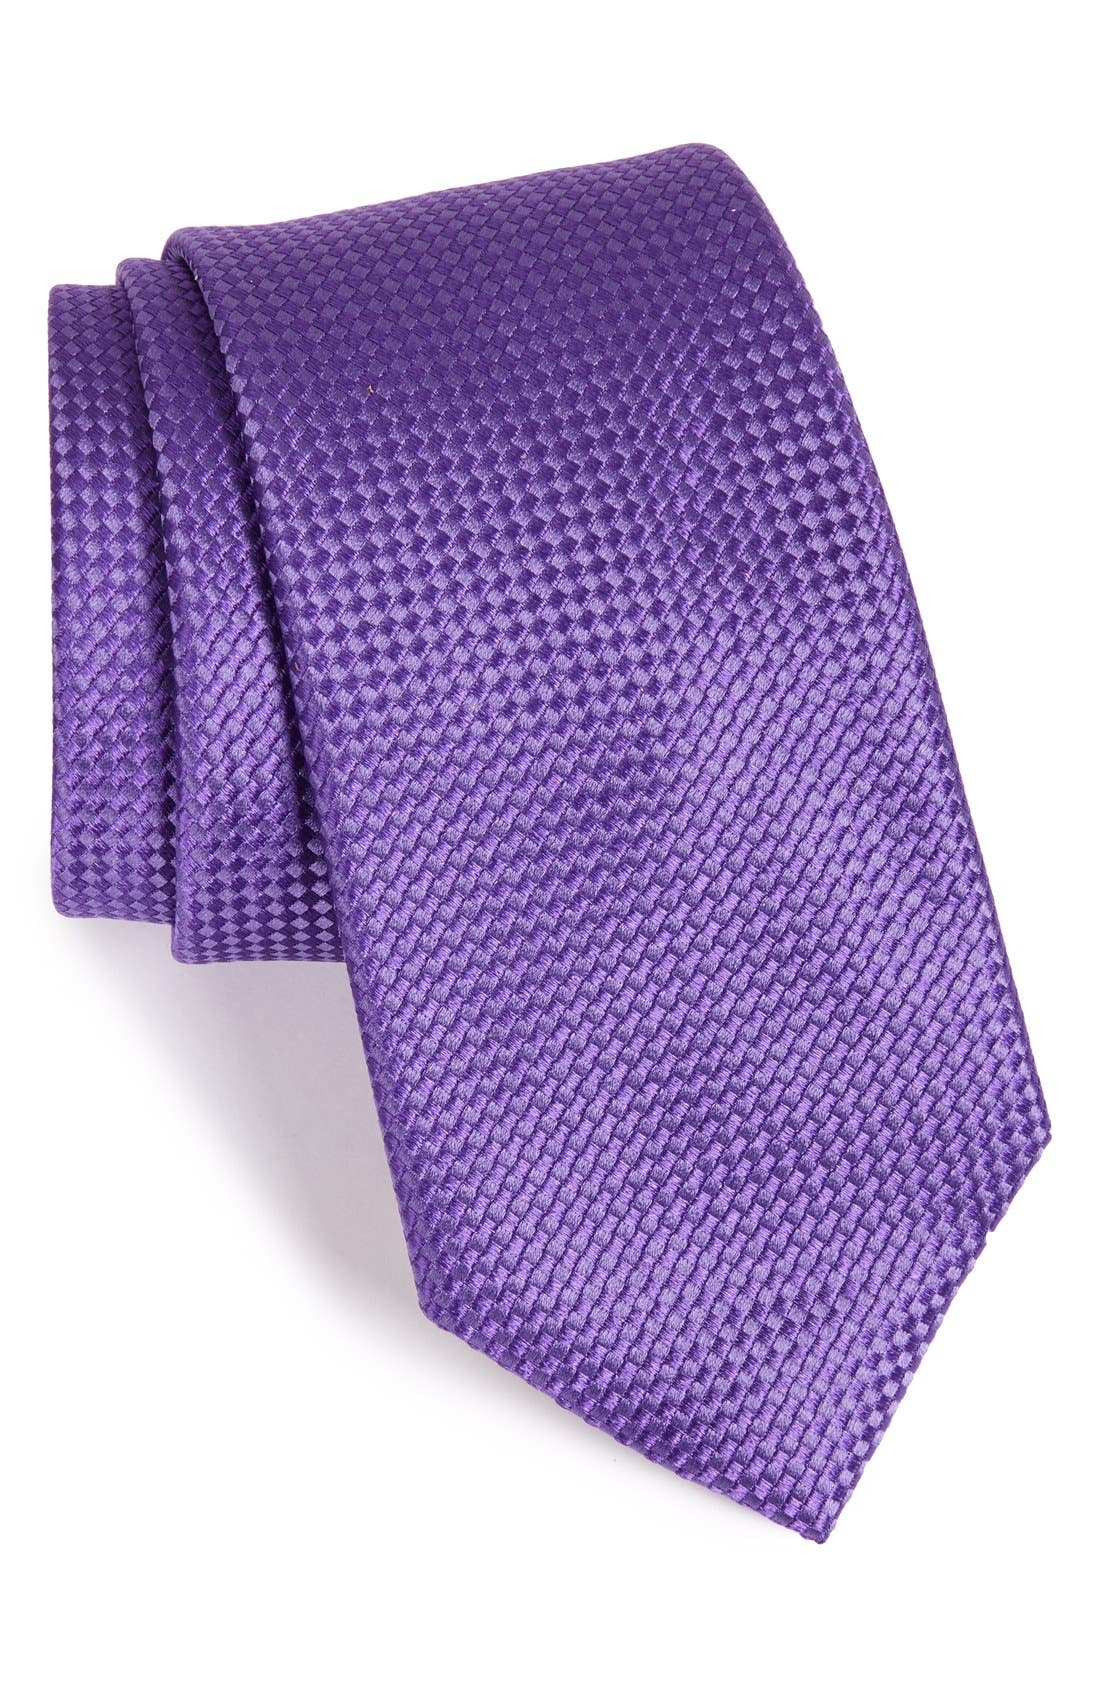 Main Image - Nordstrom Men's Shop 'Nate' Solid Silk Tie